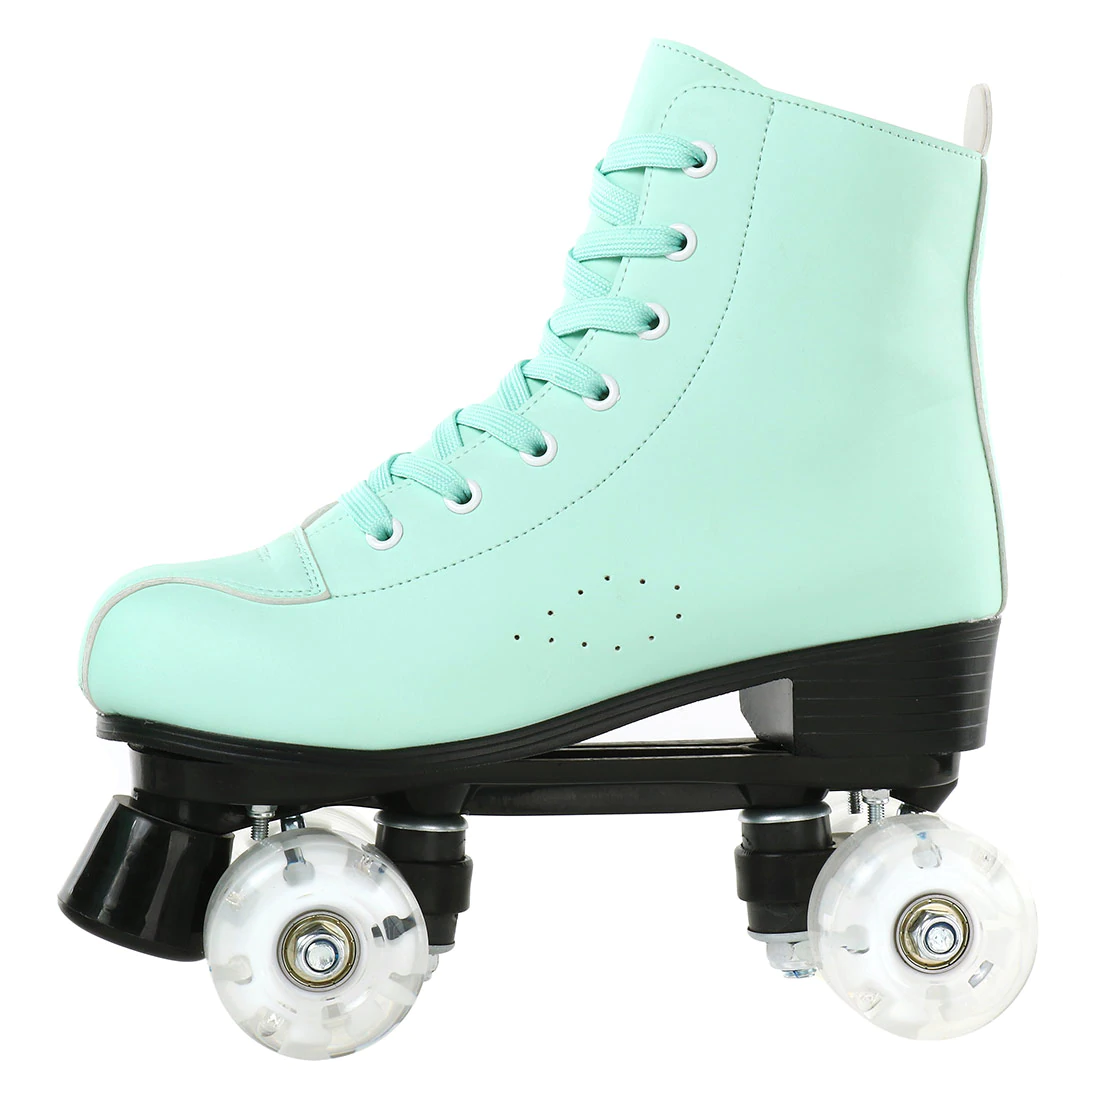 Mint Green Quad Roller Skates